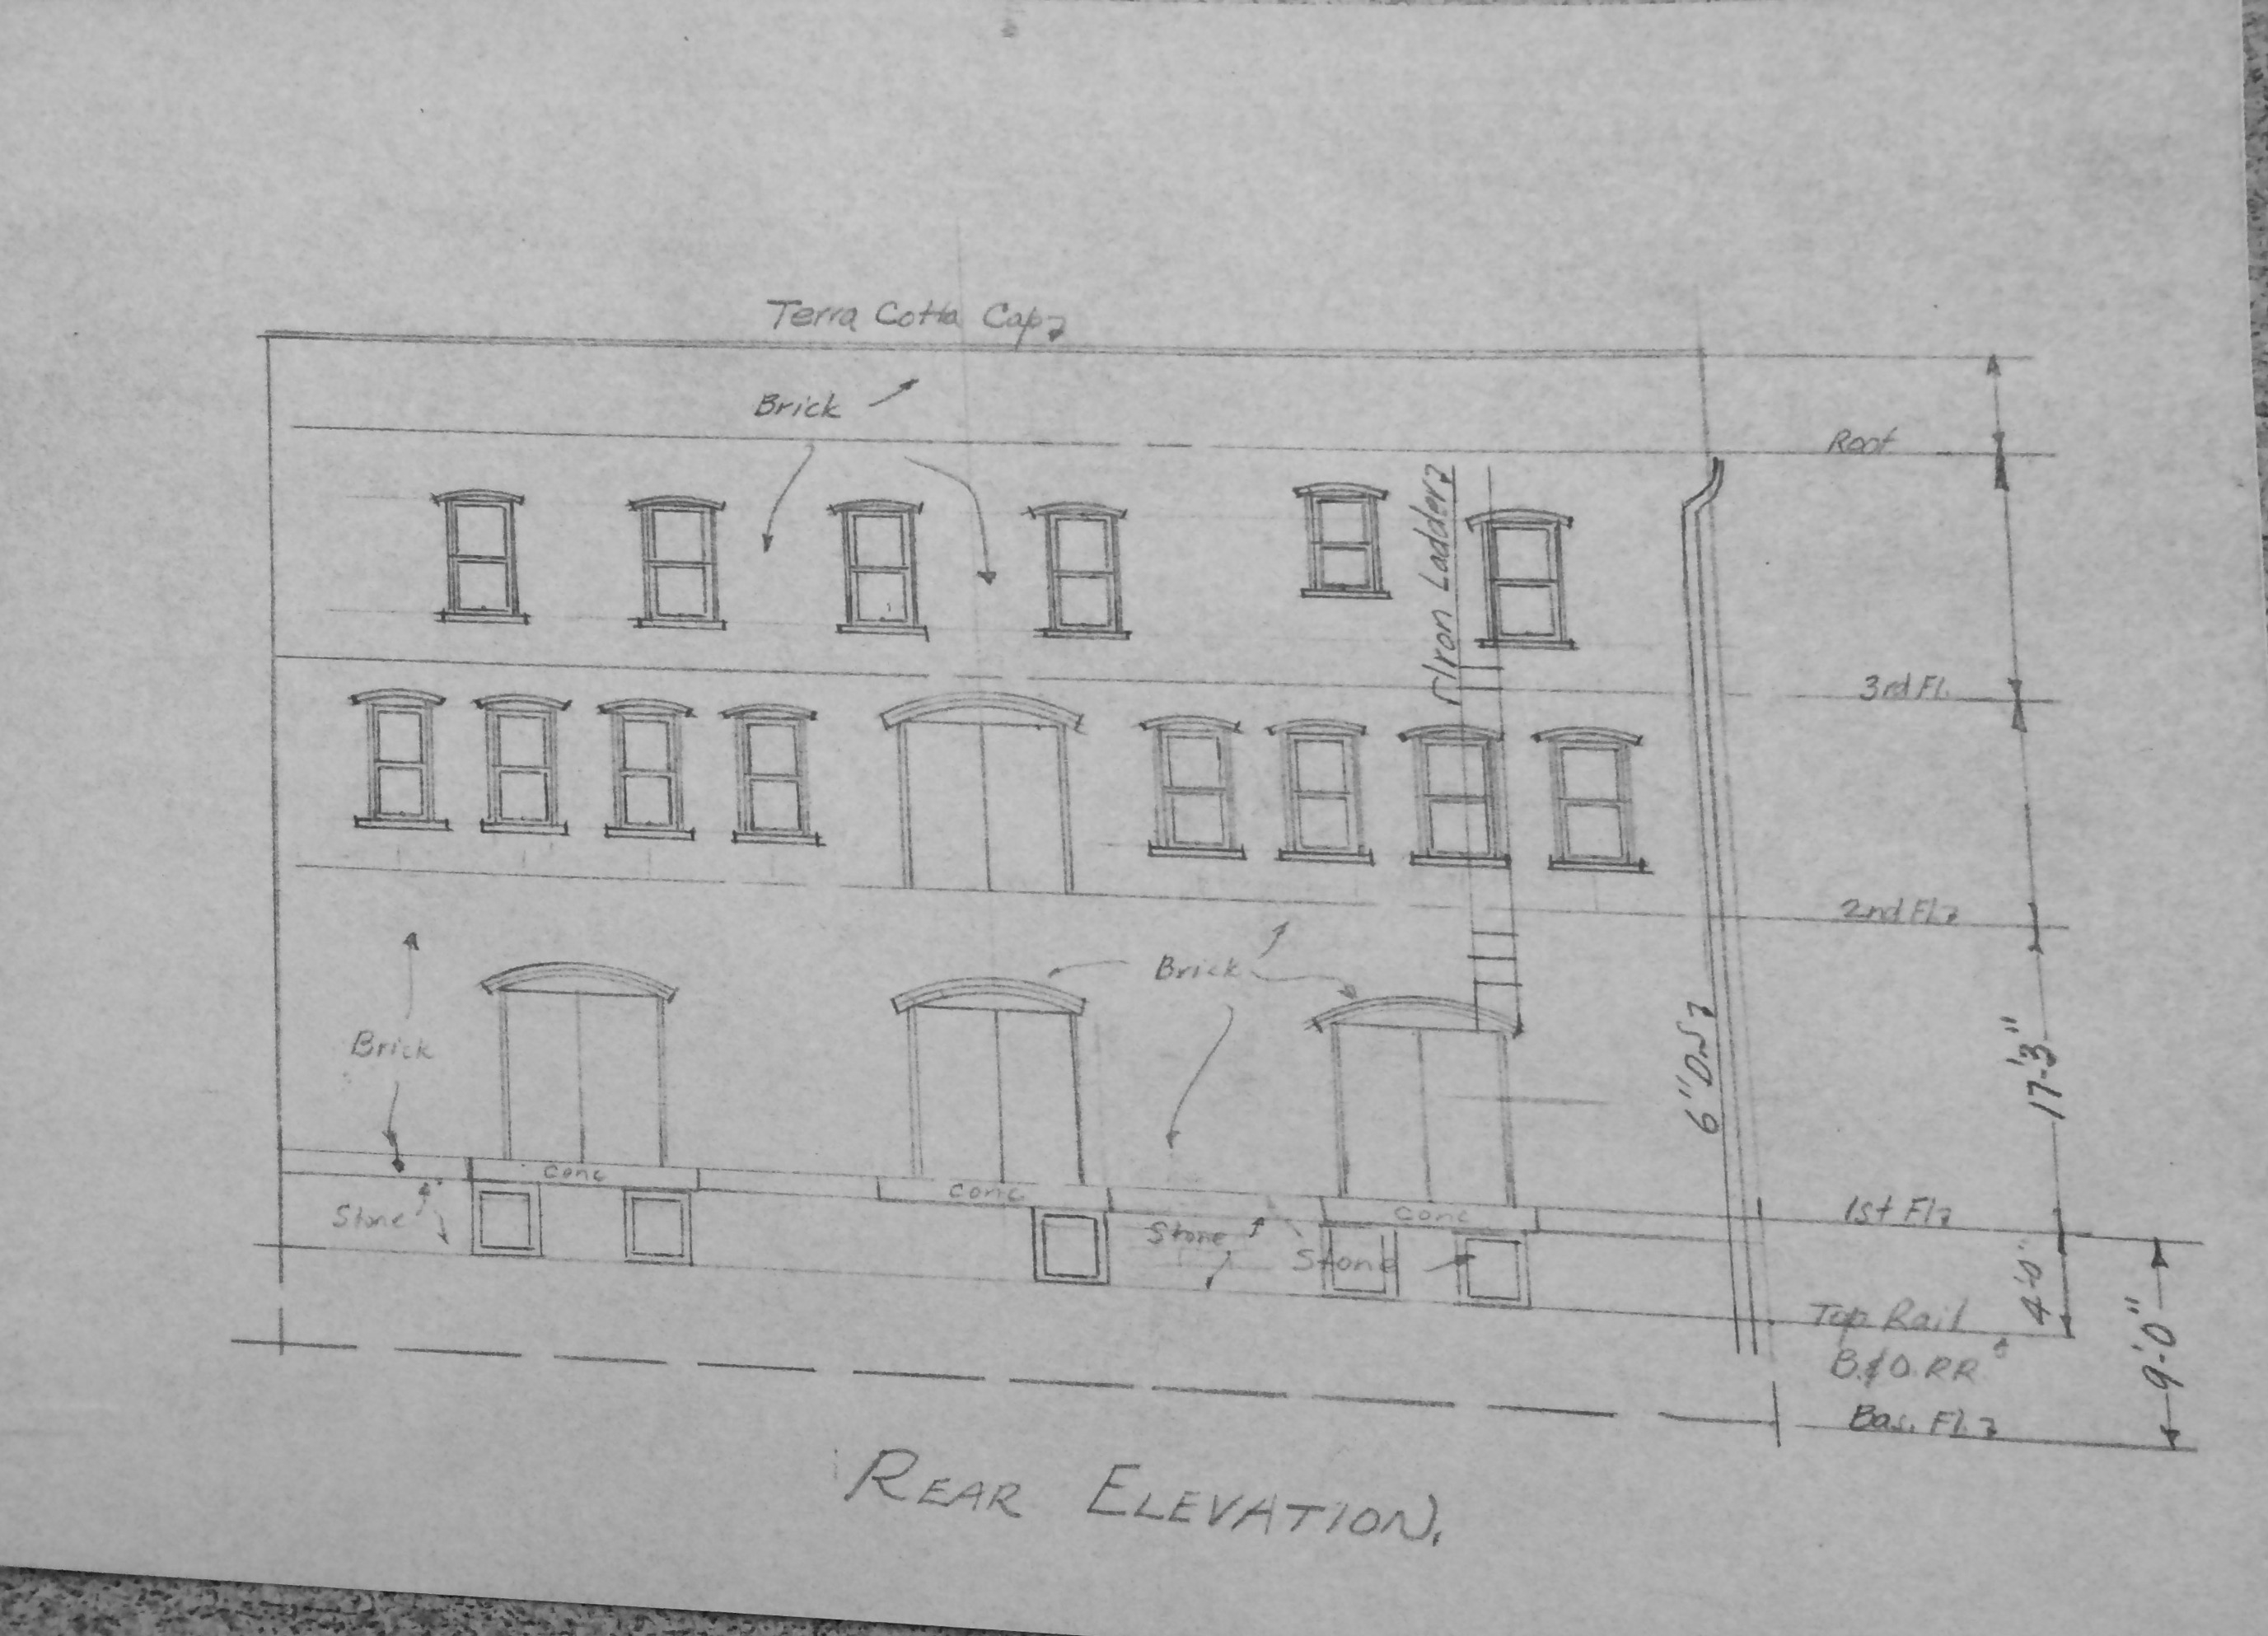 The original building plans for the Kincaid and Arnett Feed and Flour Building